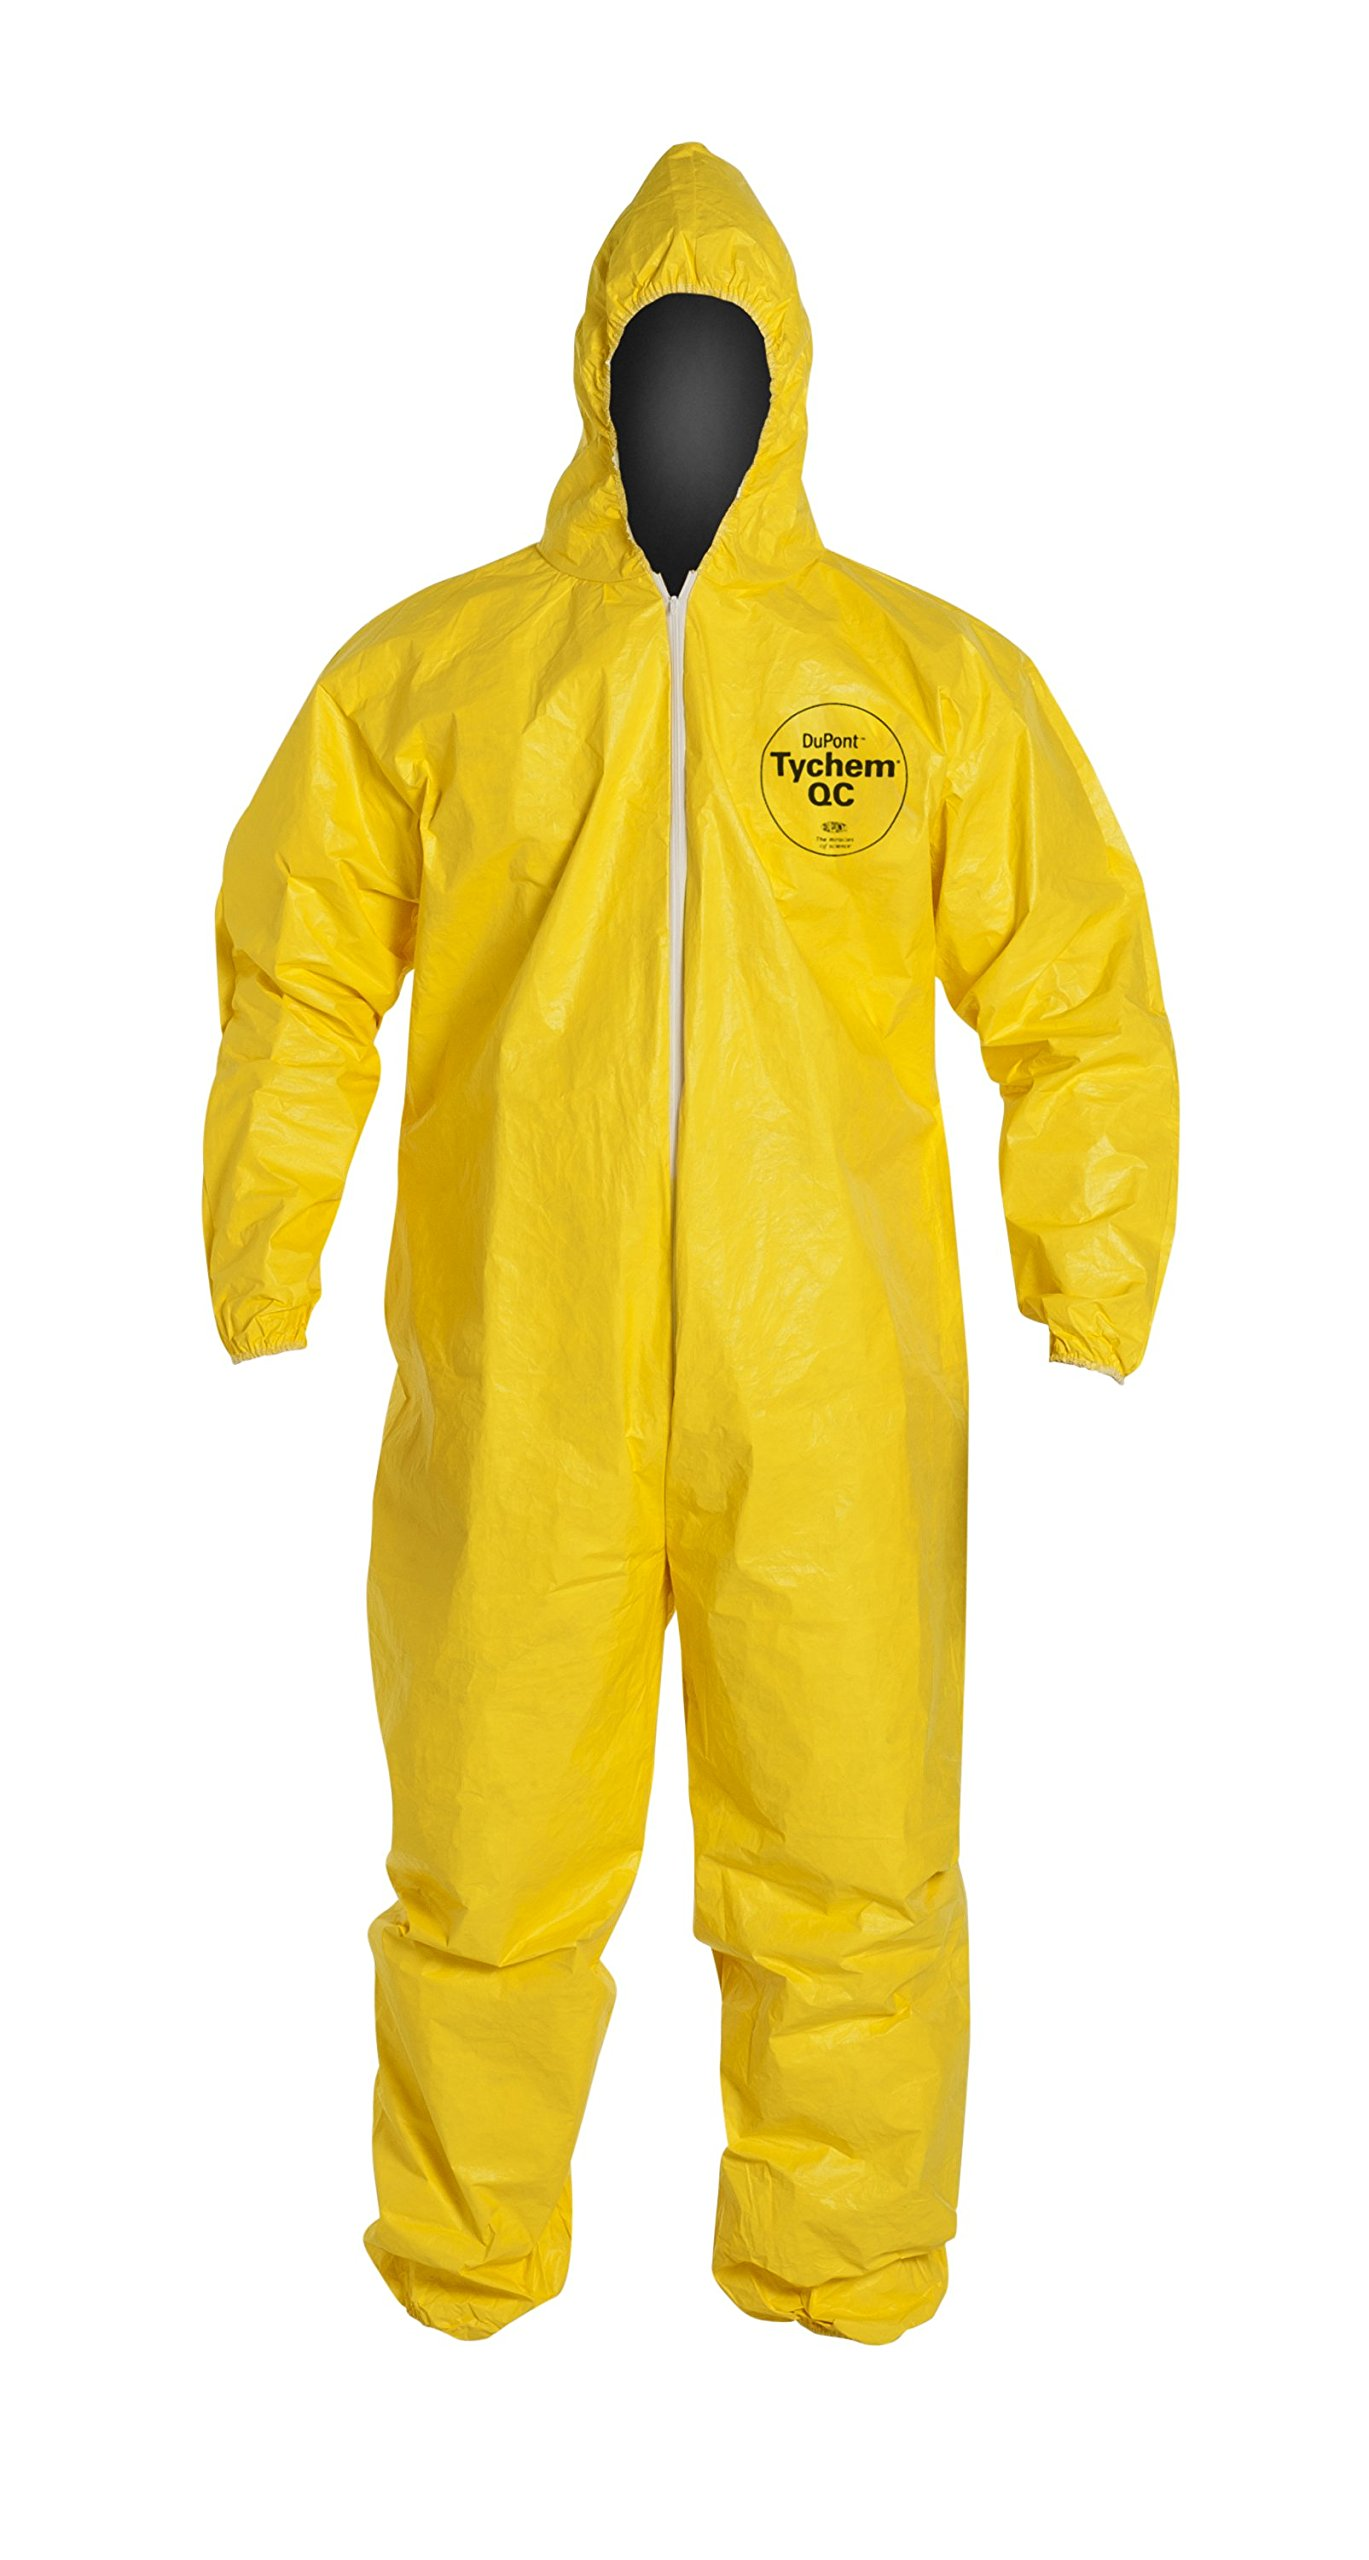 DuPont Tychem 2000 QC127S Disposable Chemical Resistant Coverall with Hood, Elastic Cuff and Serged Seams, Yellow, Large (Pack of 12)